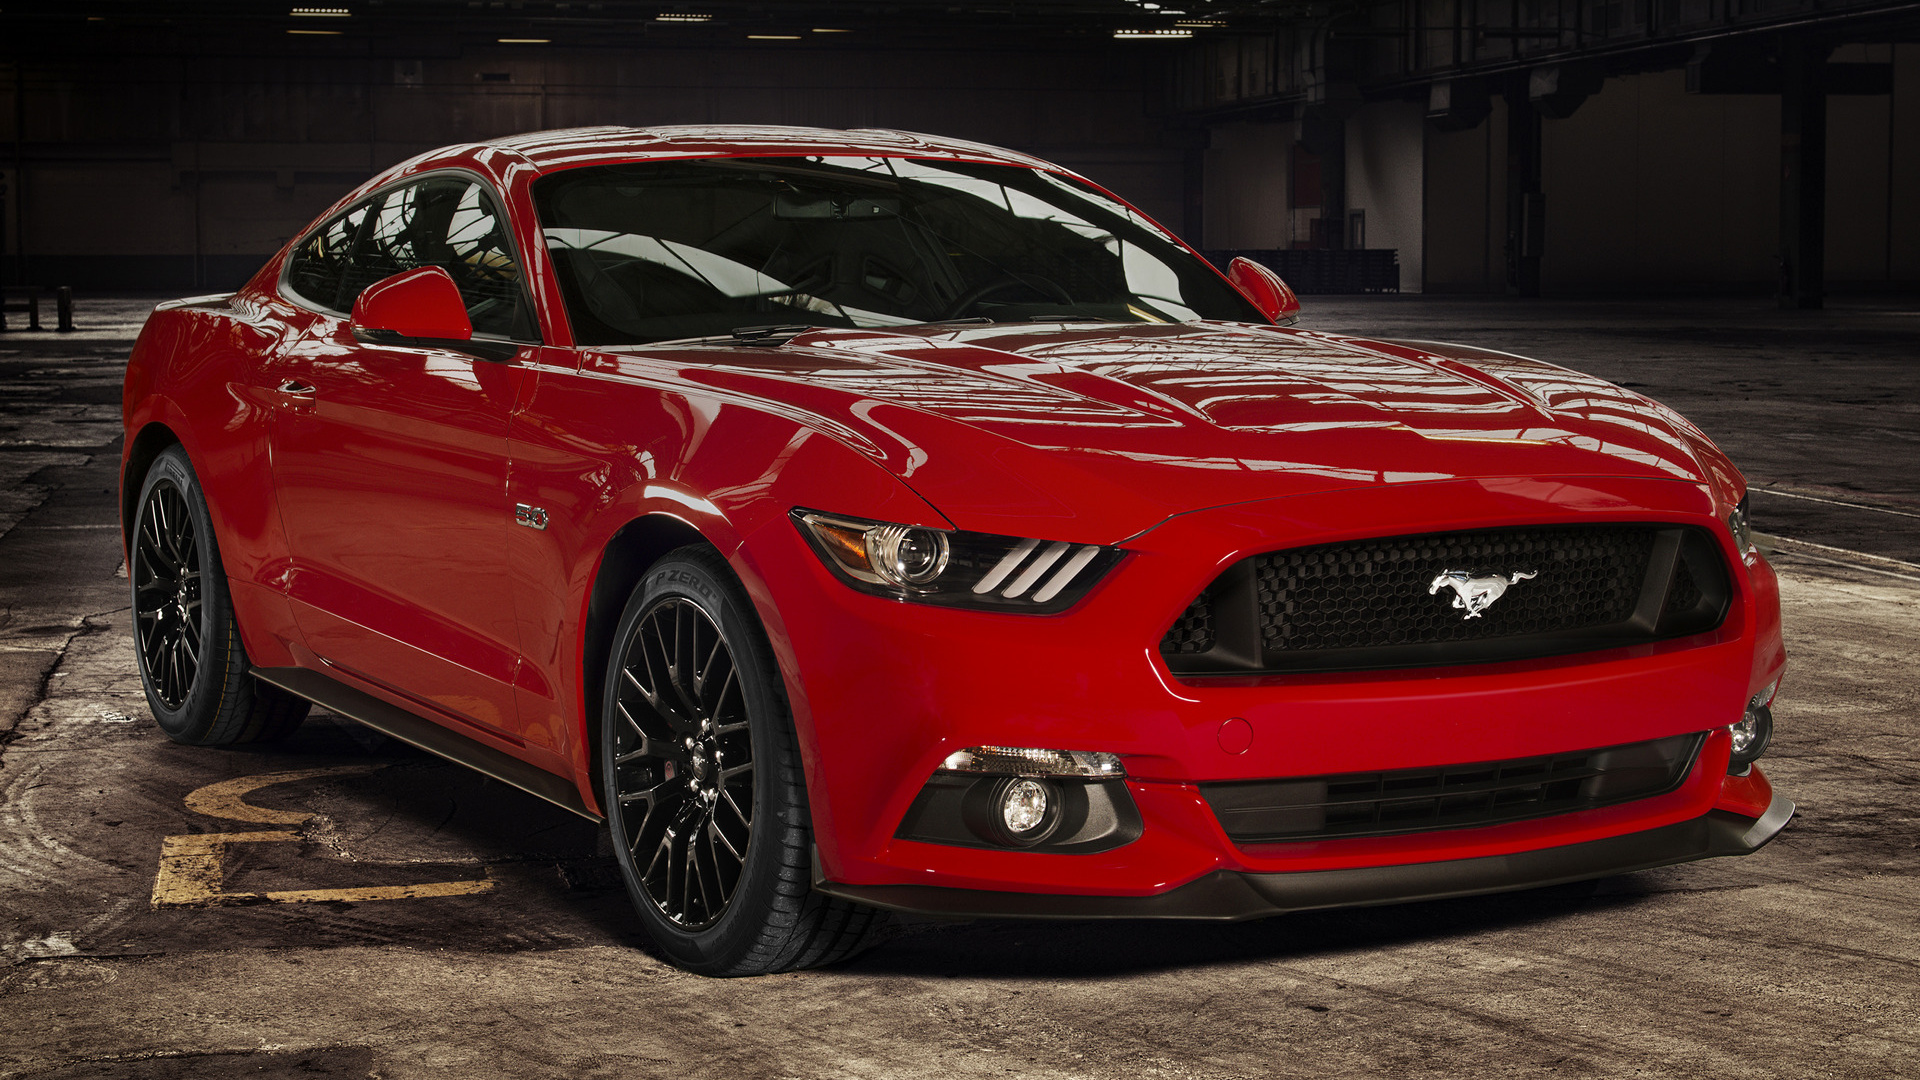 2015 Ford Mustang GT (EU) - Wallpapers and HD Images | Car ...